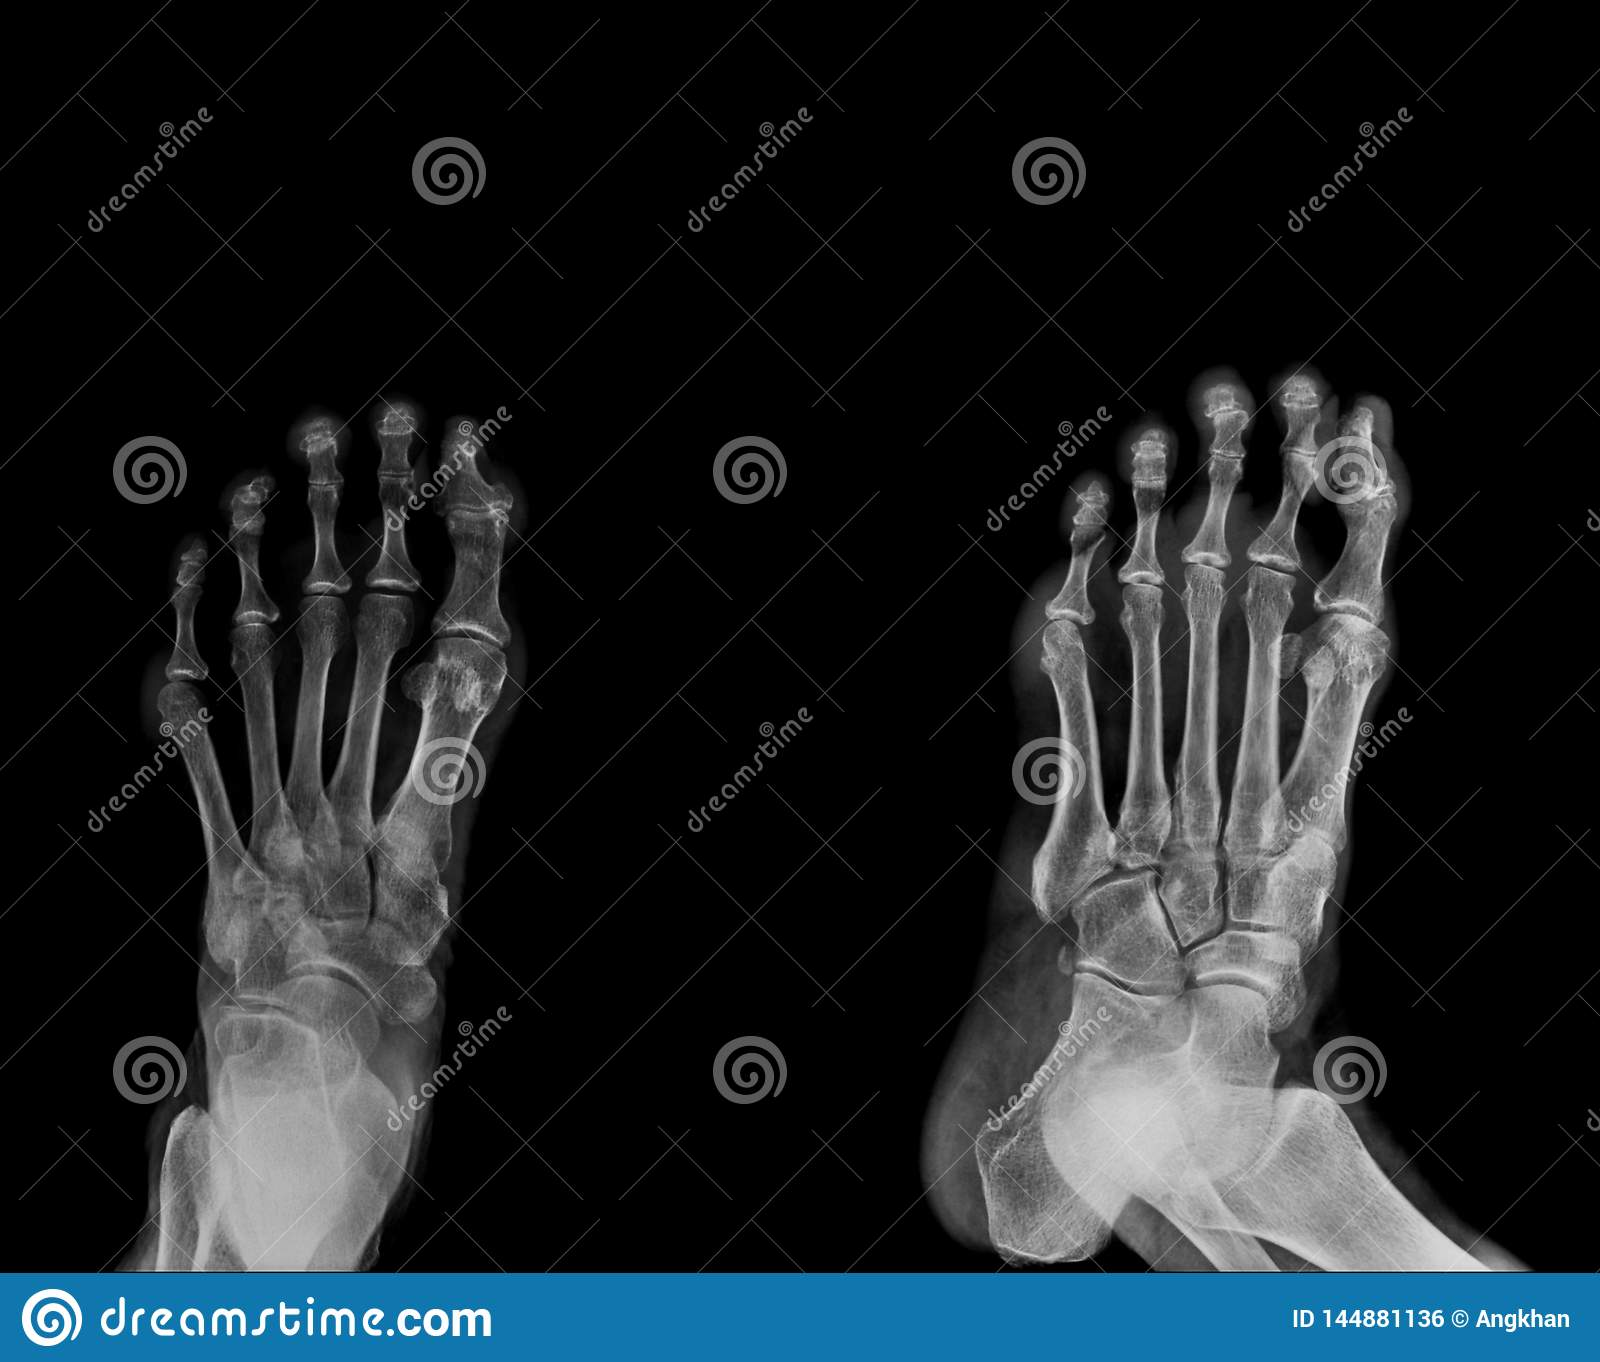 Foot x-ray AP and lateral view